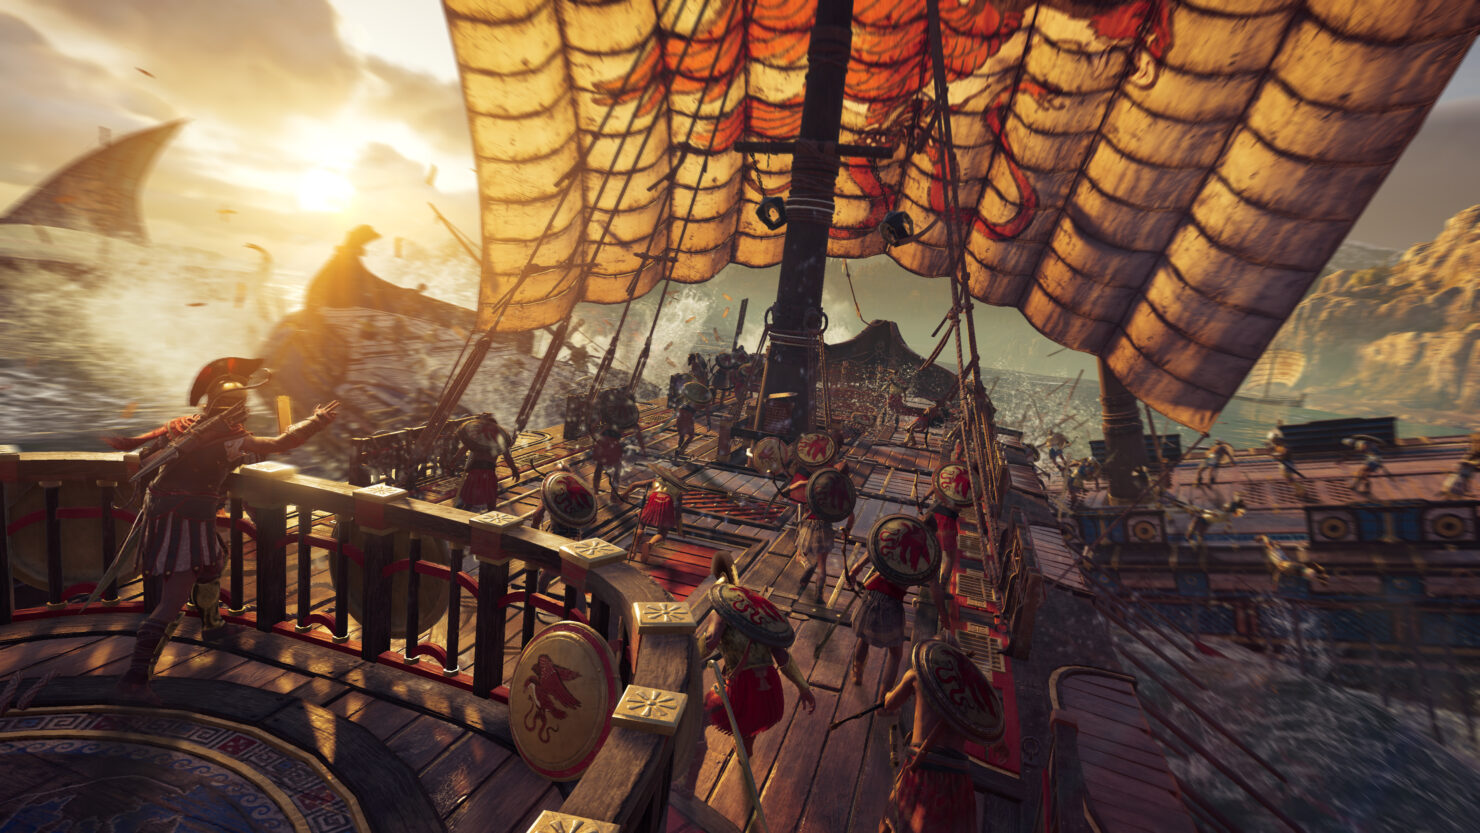 assassins_creed_odyssey_screen_cleaving_e3_110618_230pm_1528723939